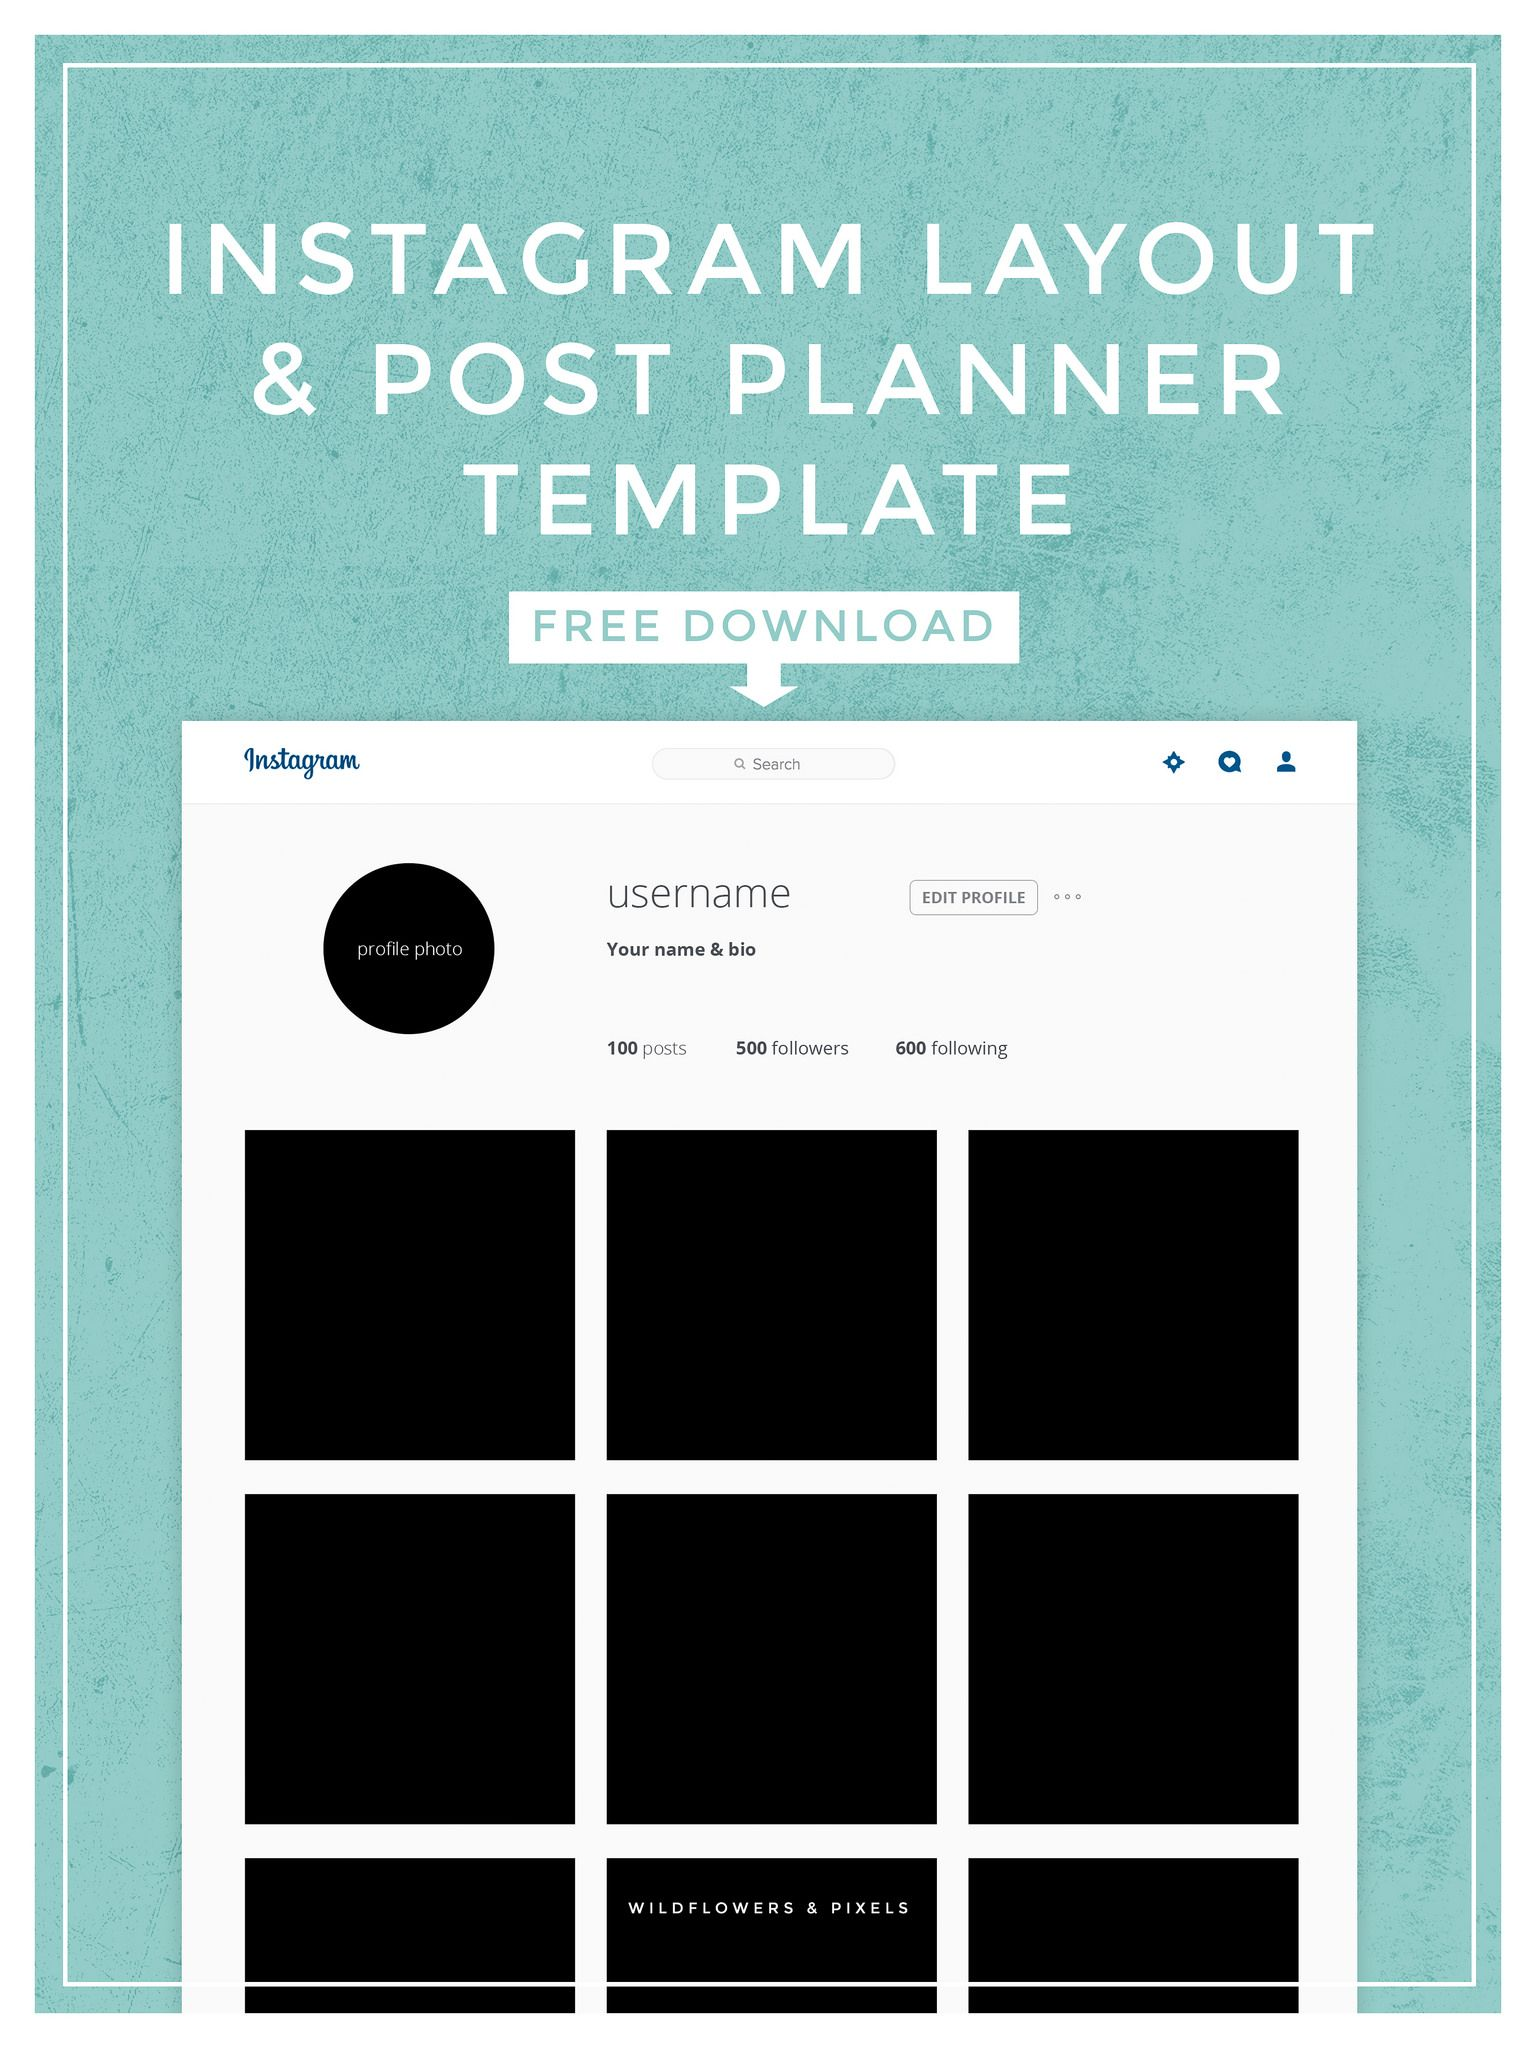 Instagram Layout & Post Planner Template | Planner template and ...